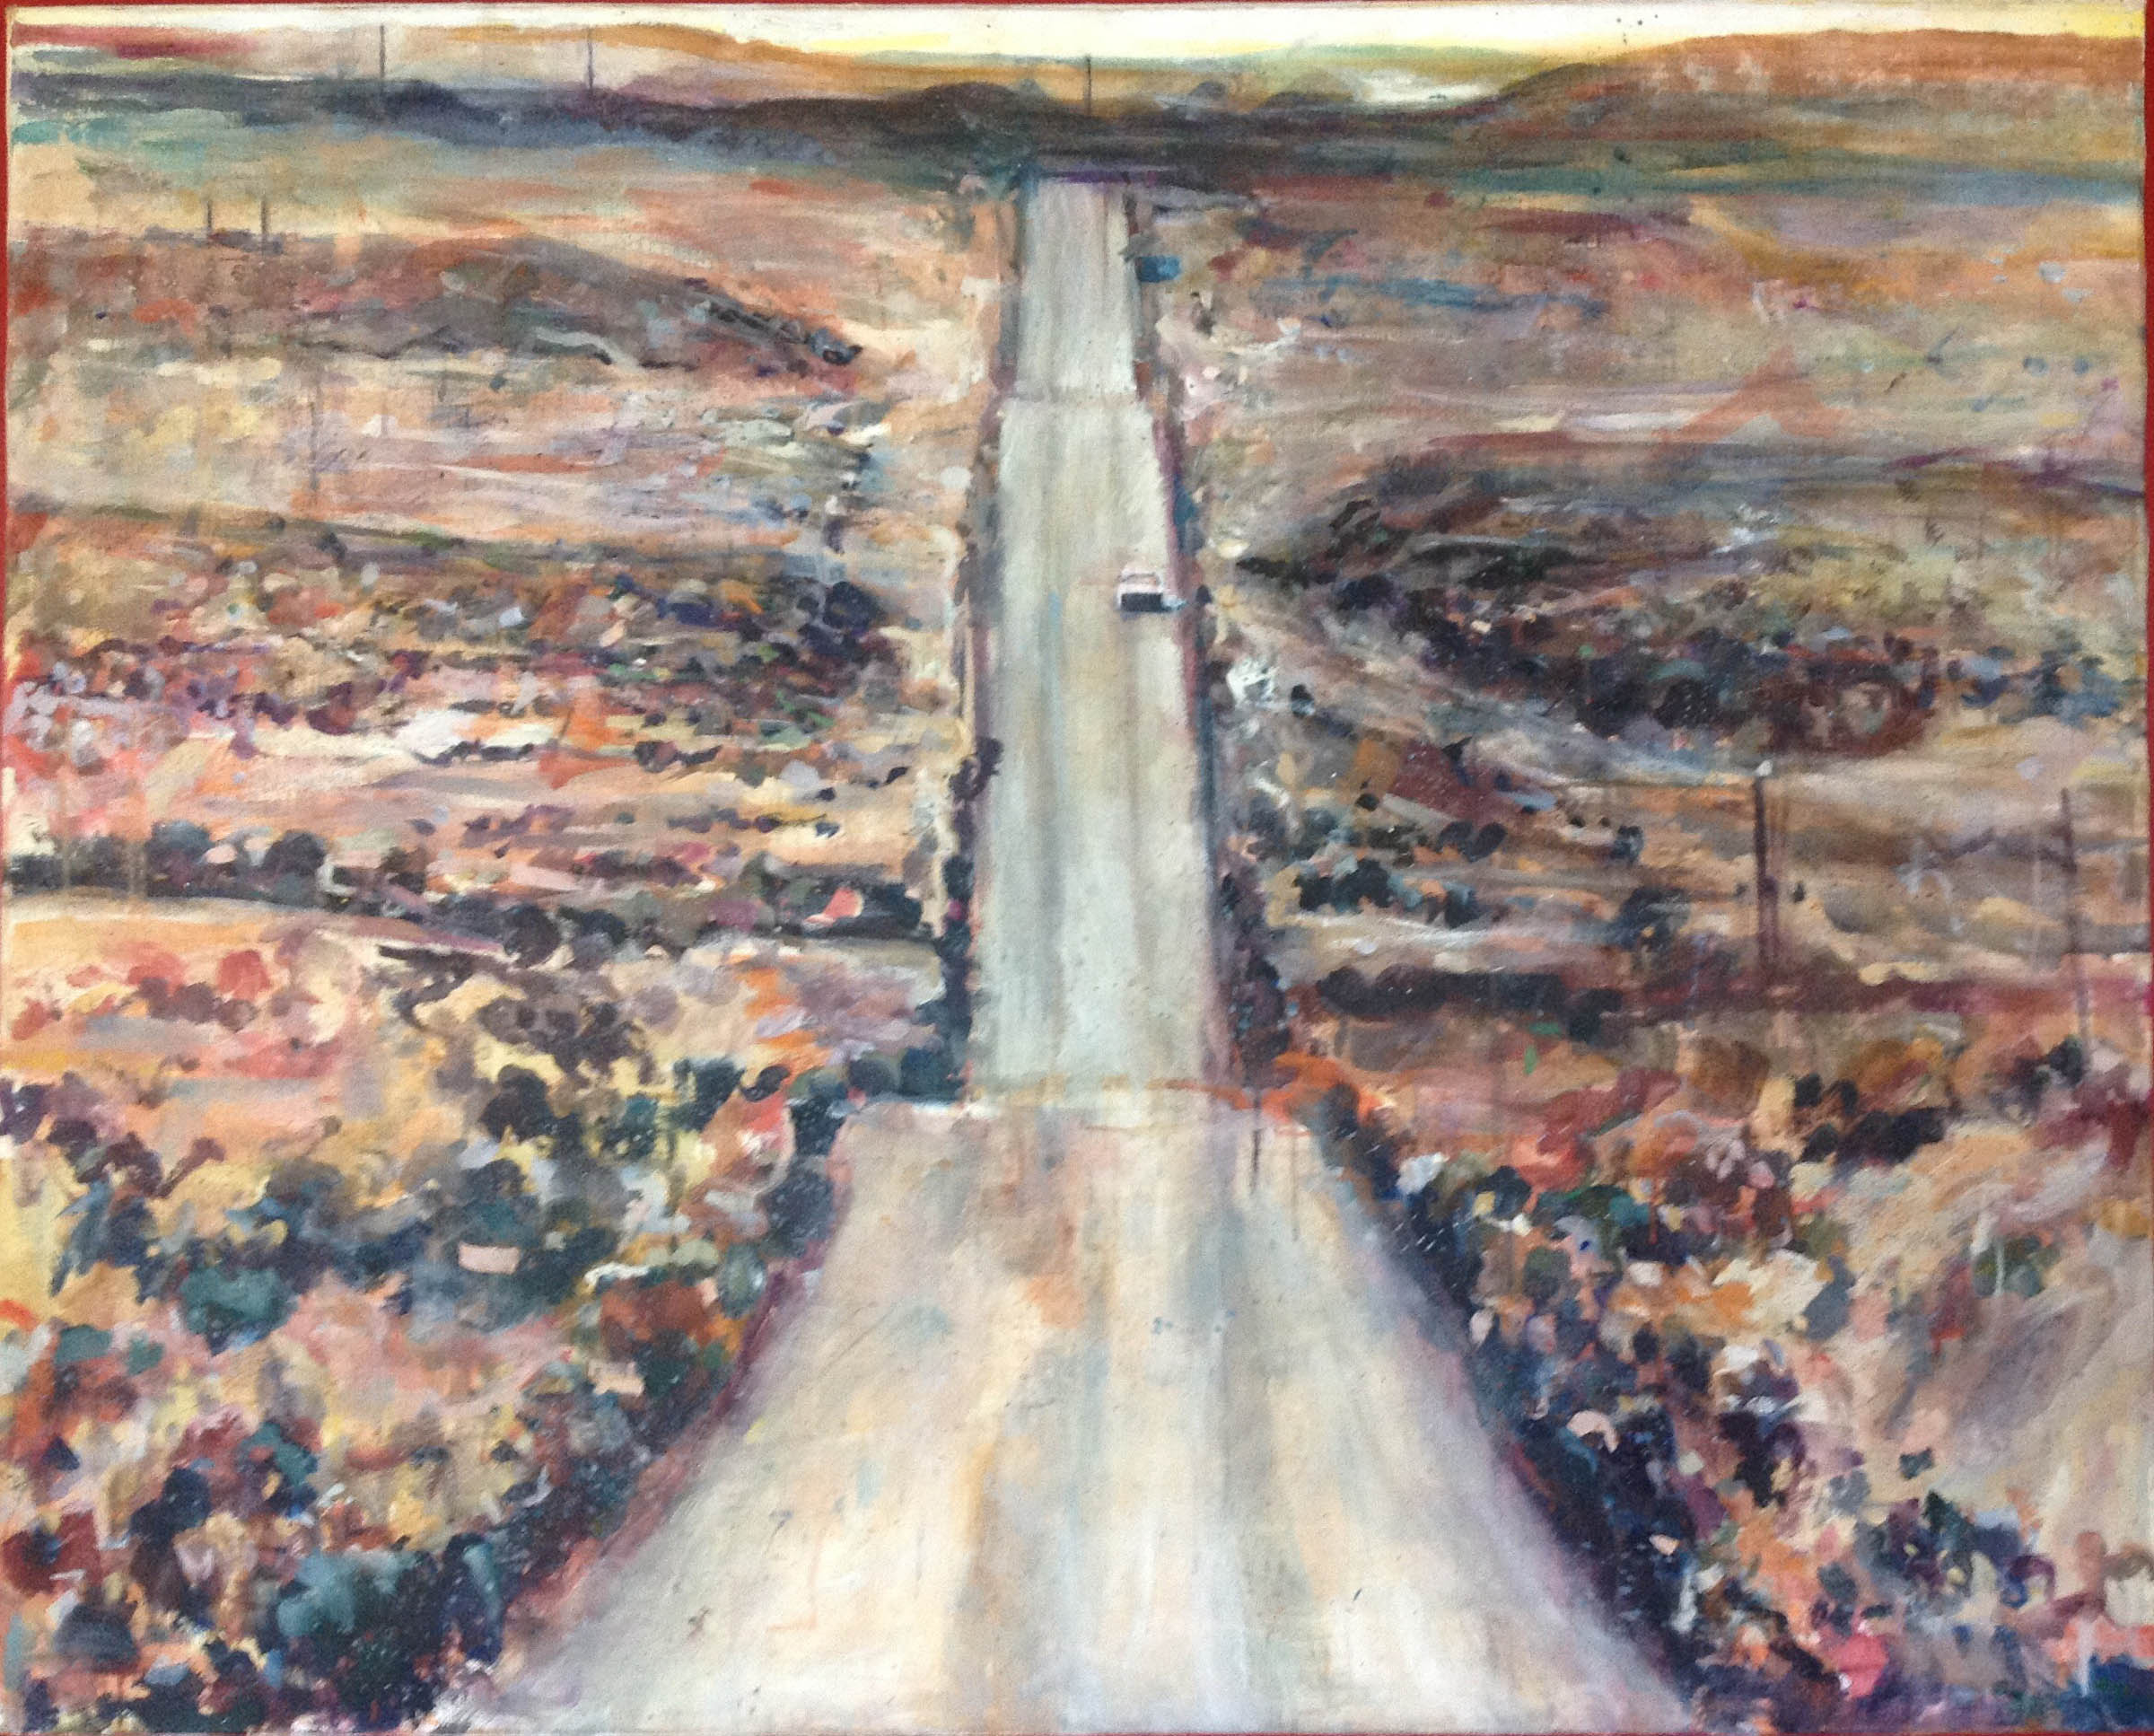 """Desert Road, stained painting/acrylic on canvas, 48""""x 60"""" On Exhibit, John's Grille, Mukilteo, WA"""